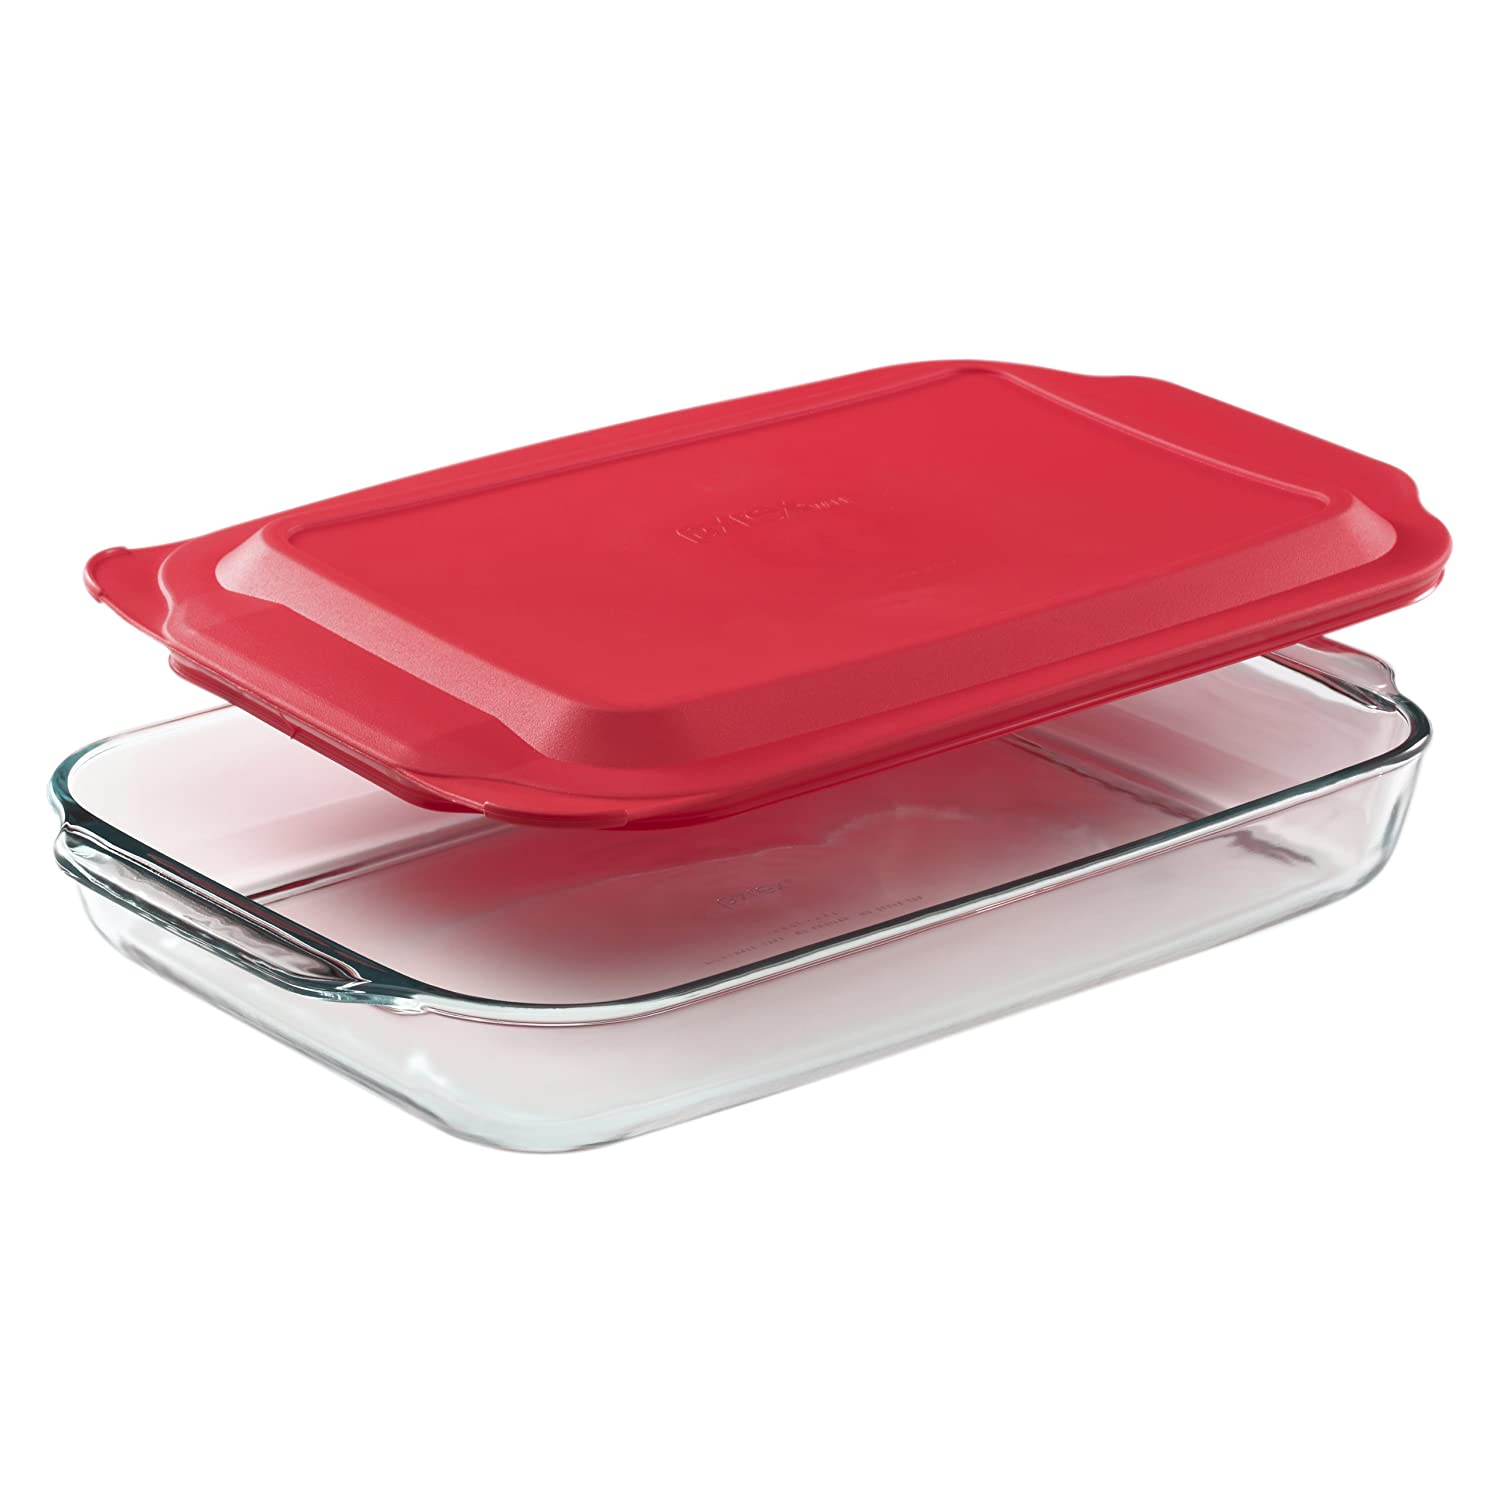 4.8 Quart Oblong Baking Dish with Red Plastic Lid, Pack Of 2 Pyrex SYNCHKG087860